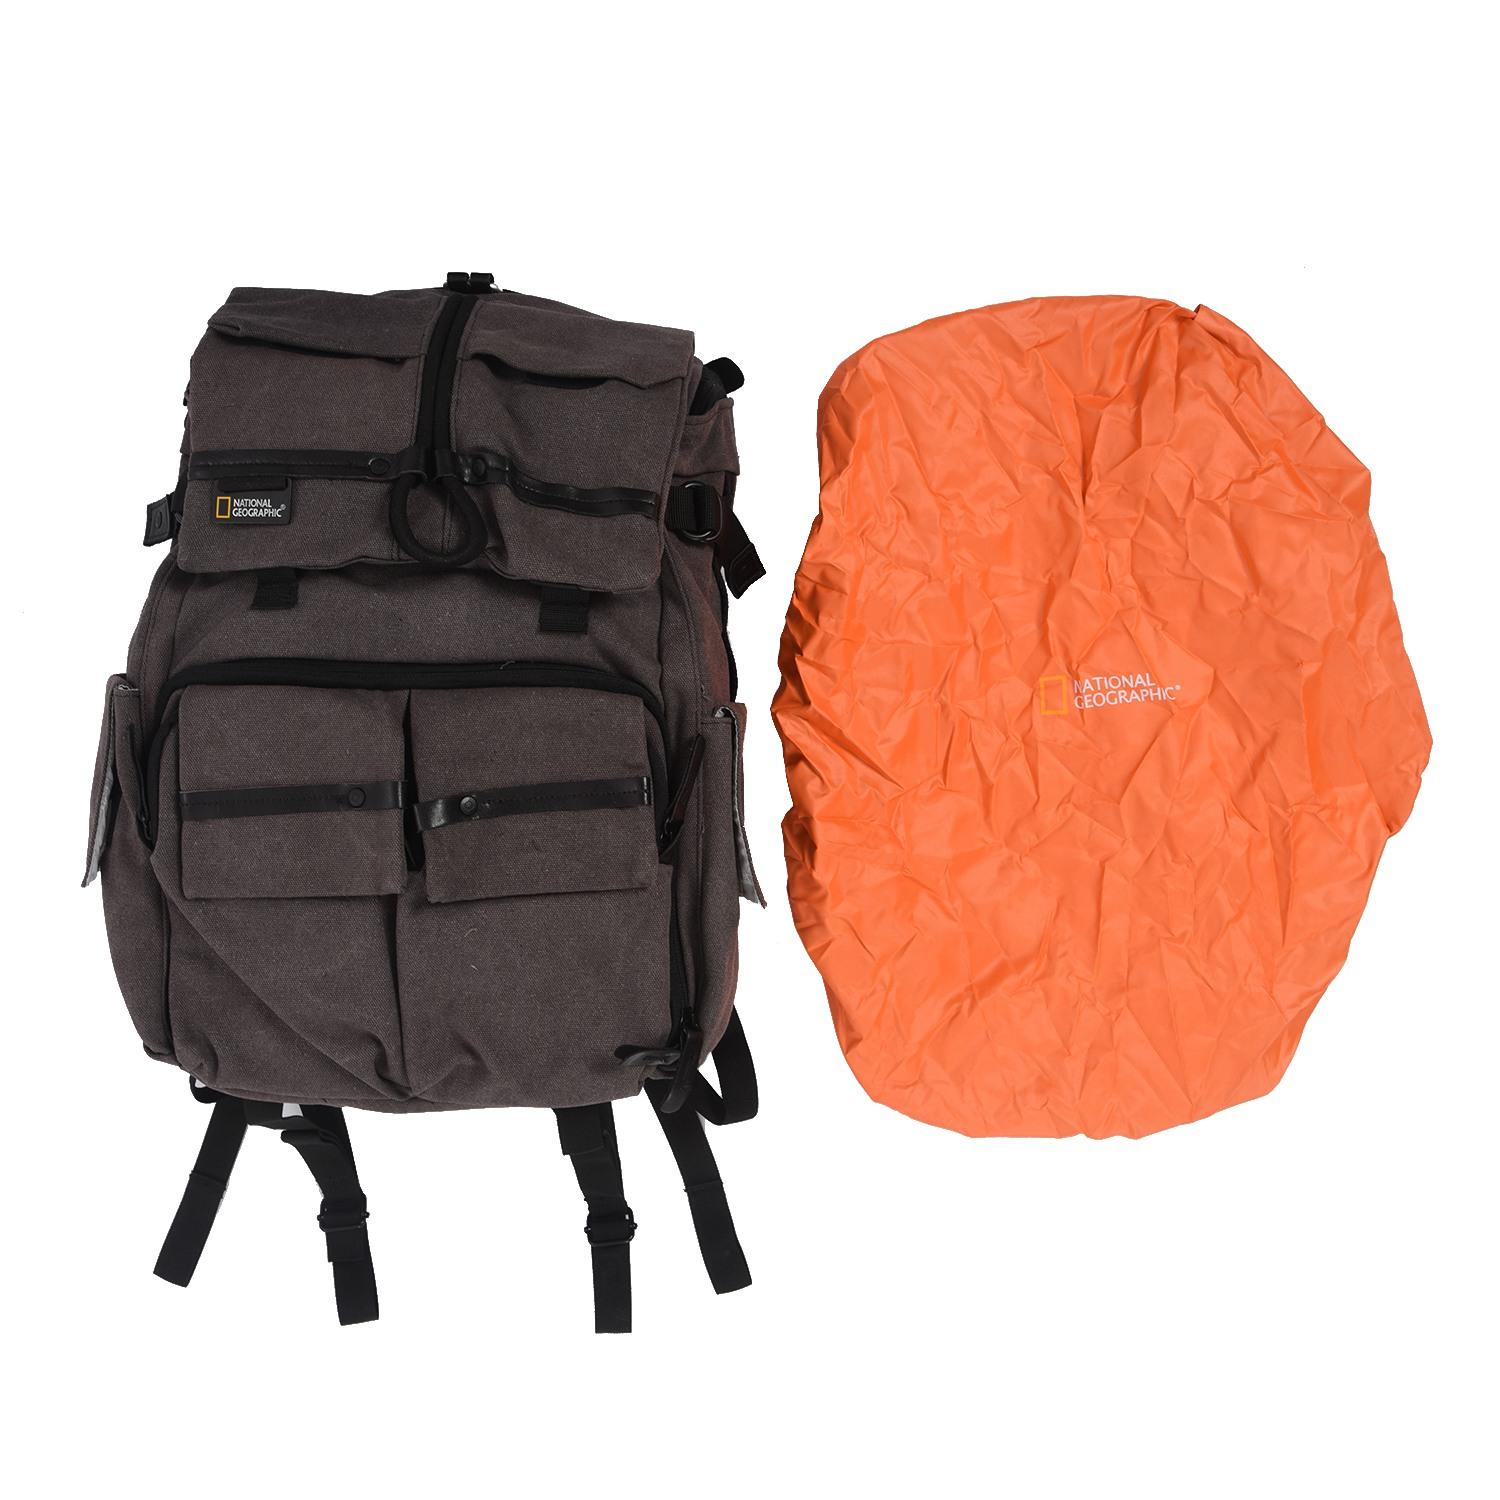 Digital Gear Bags extra Thick Version Top High Quality Camera Bag National Geographic Ng W5070 Camera Backpack Genuine Outdoor Travel Camera Bag